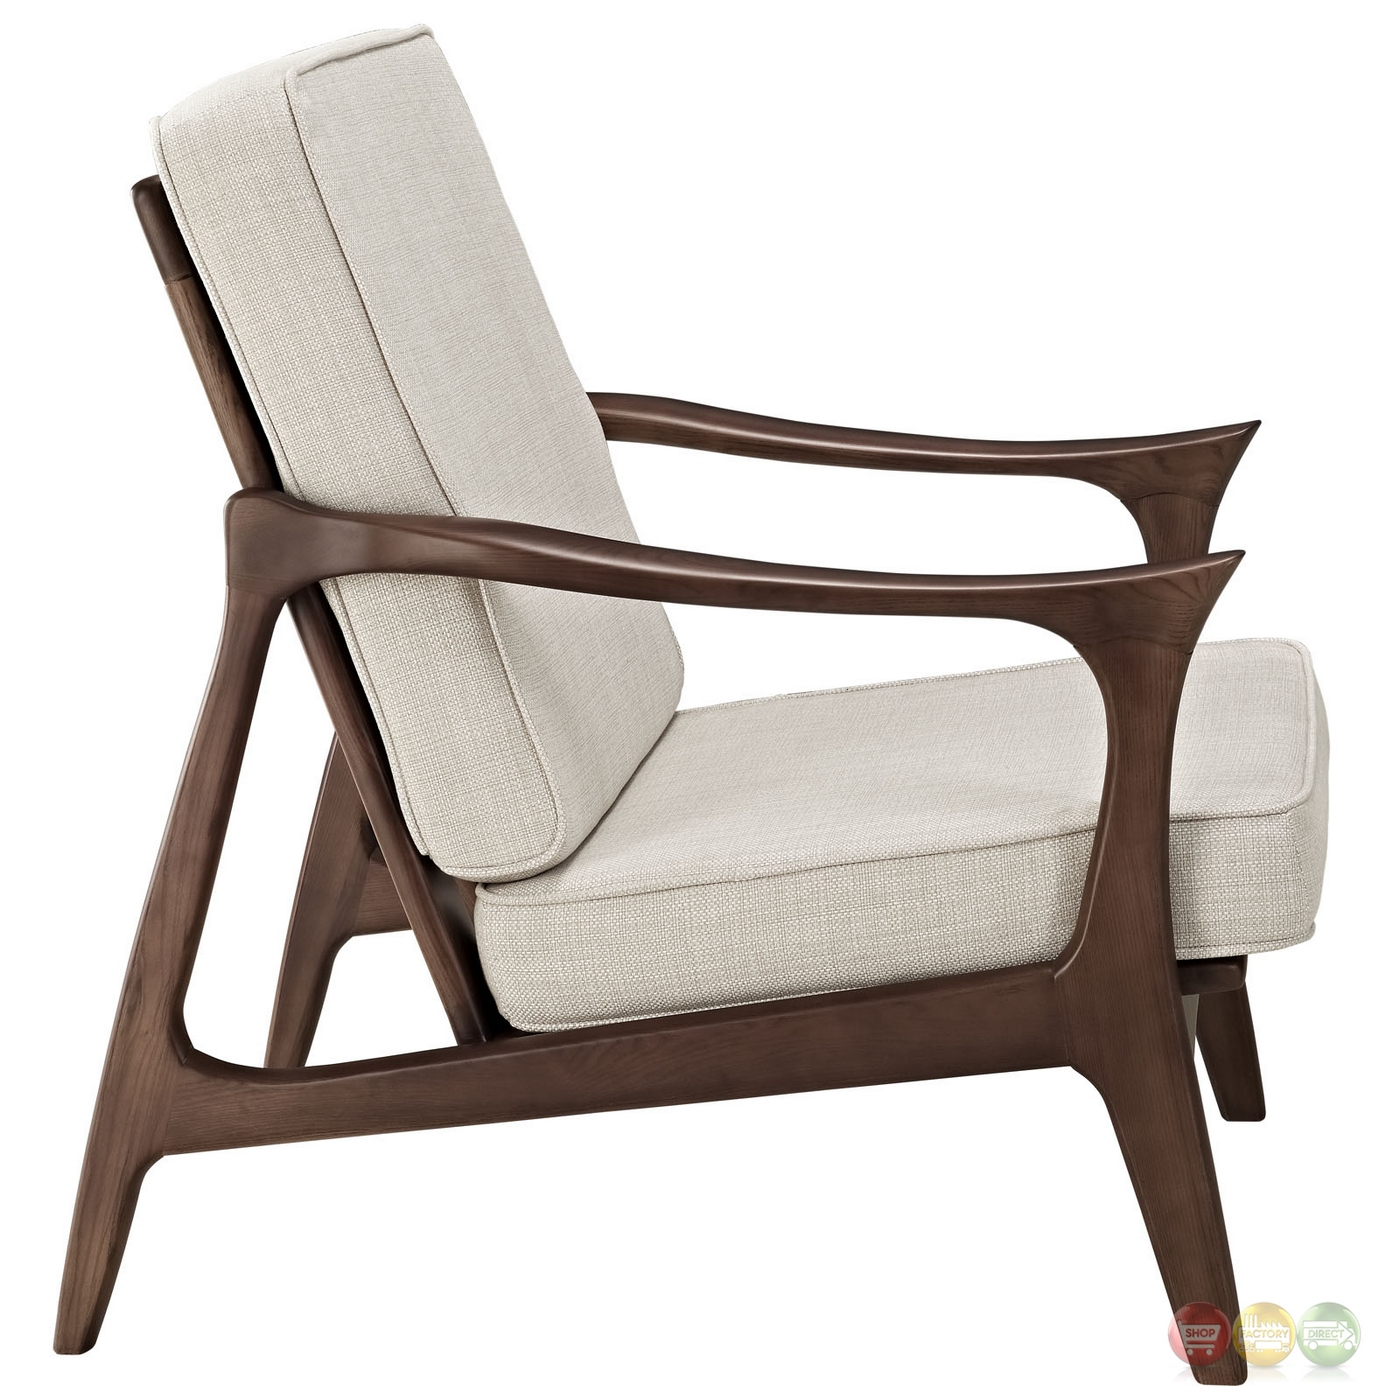 Paddle Contemporary Wooden Lounge Chair With Upholstered Cushions Brown